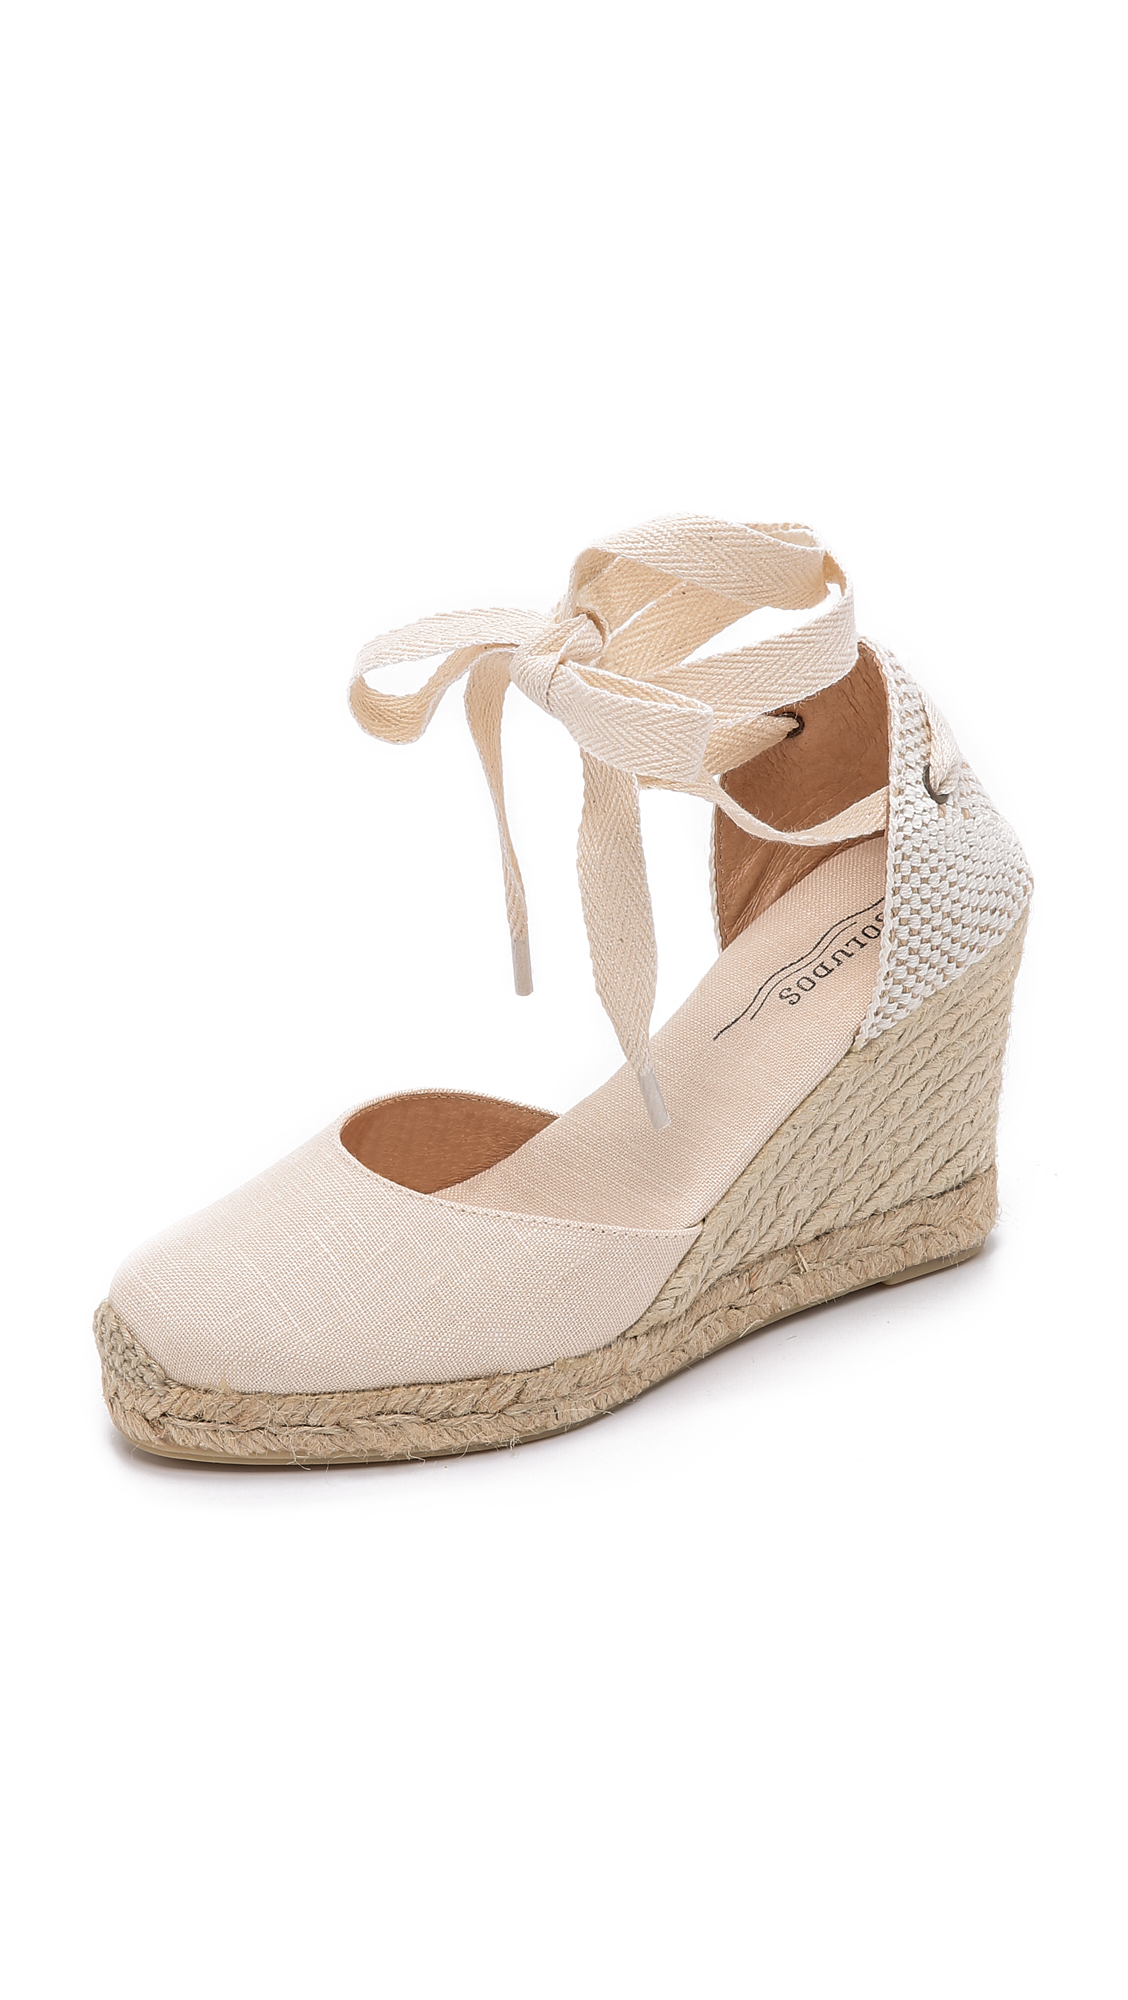 Free shipping on Soludos shoes at marloslash.ml Shop for flats, slip-ons and more. Brands: Aquatalia, Munro, Paul Green, Fly London, Jeffrey Campbell.